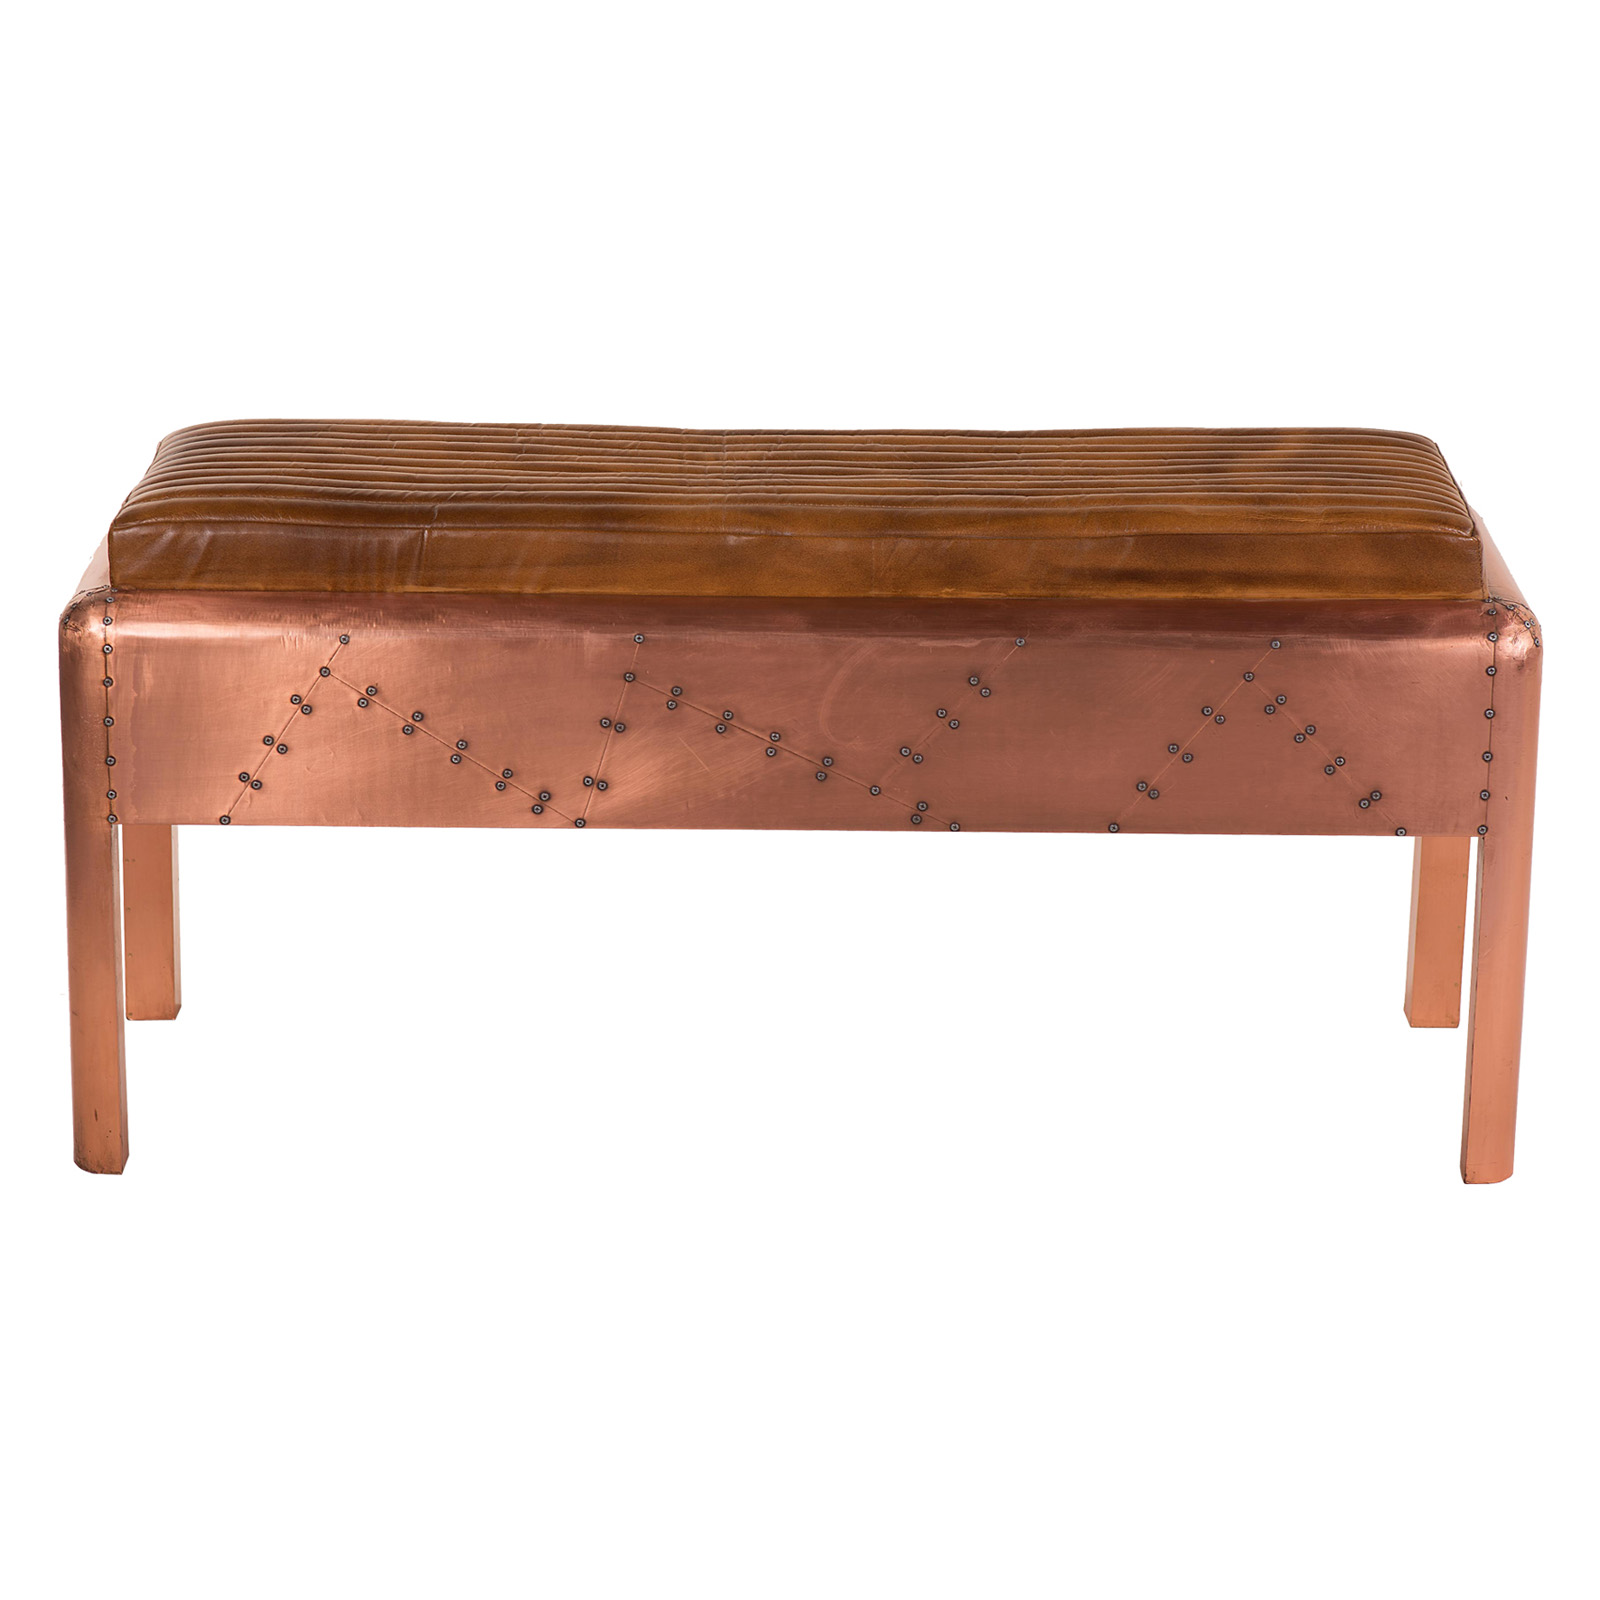 Yosemite home decor upholstered bench ottoman indoor benches at hayneedle Decorative benches